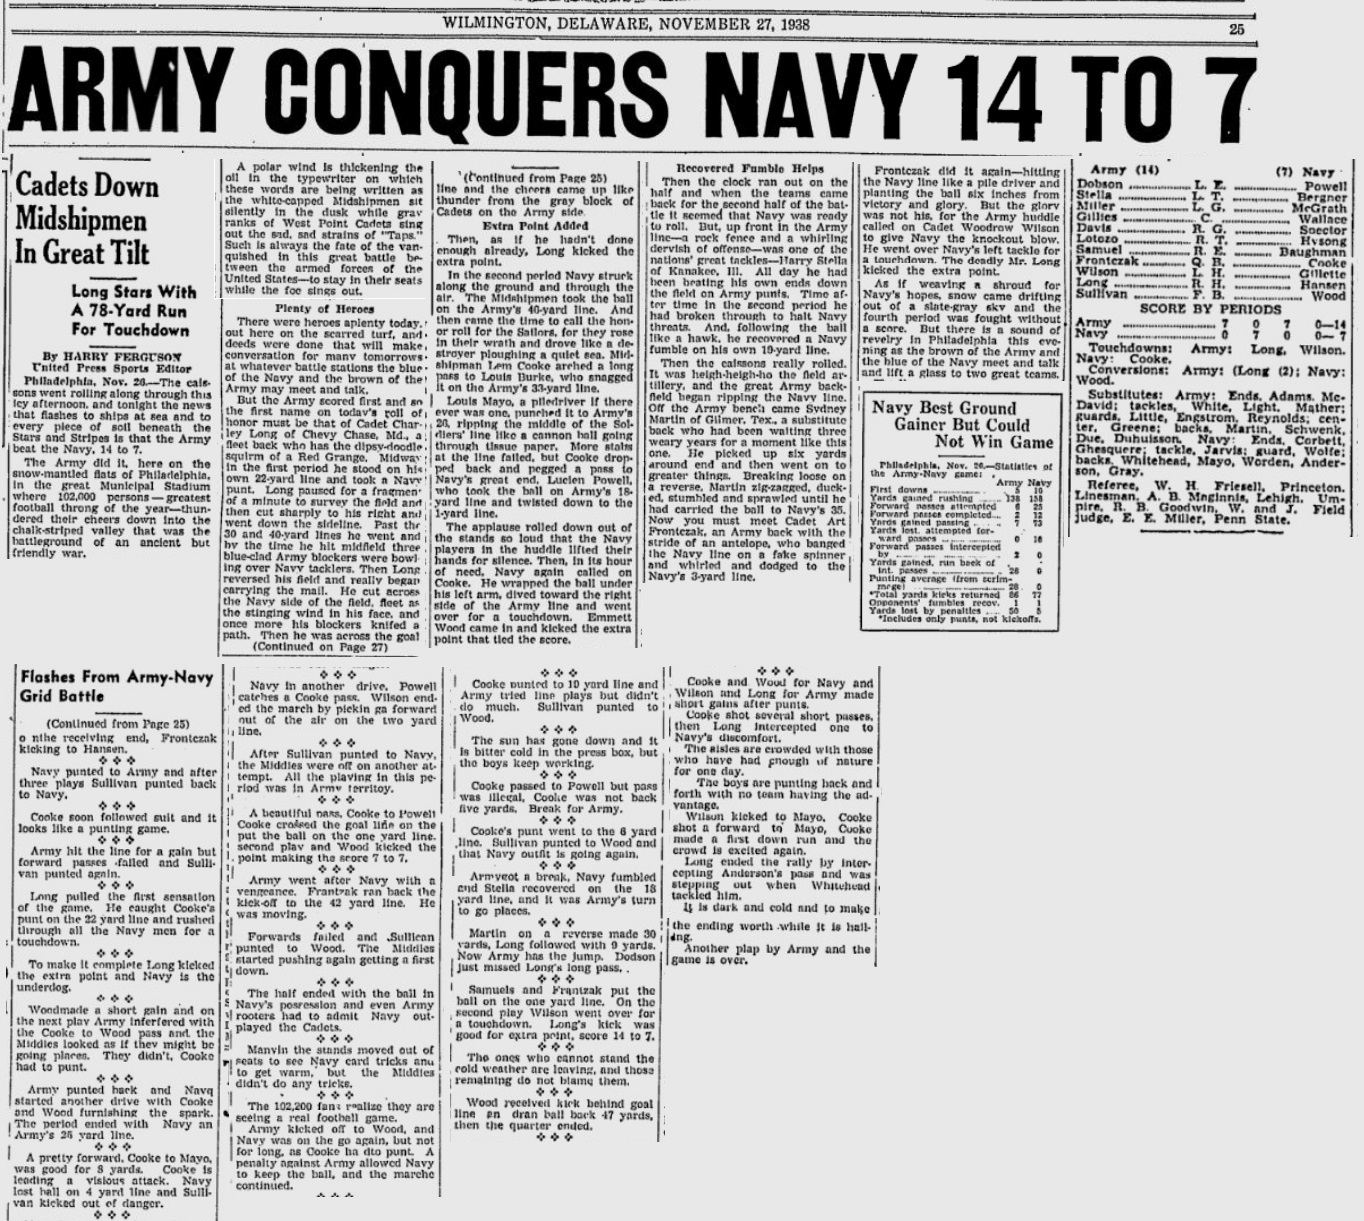 armyfb_1938_vsnavy_sundaymorningstar_nov271938